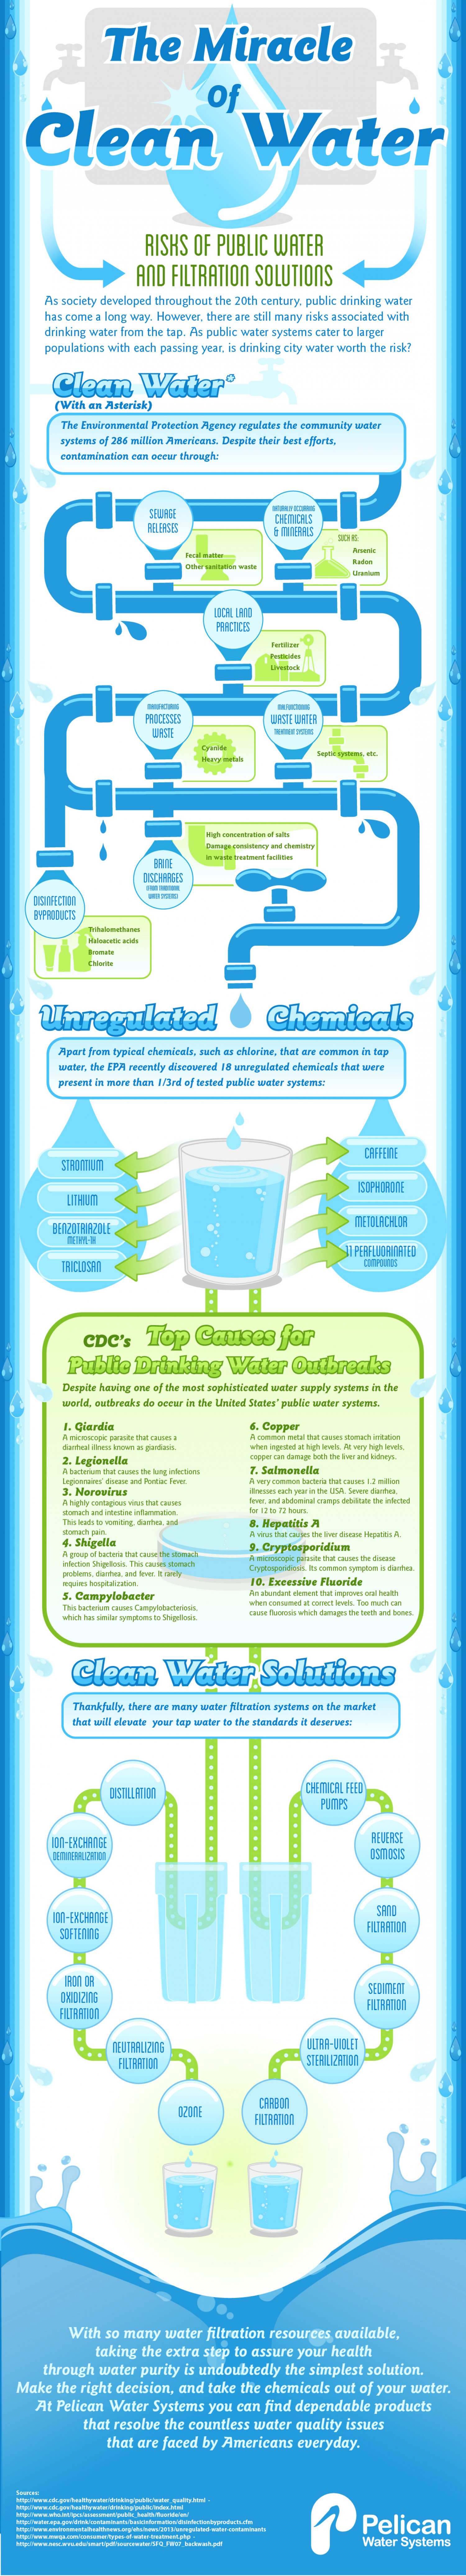 The Miracle of Clean Water Infographic